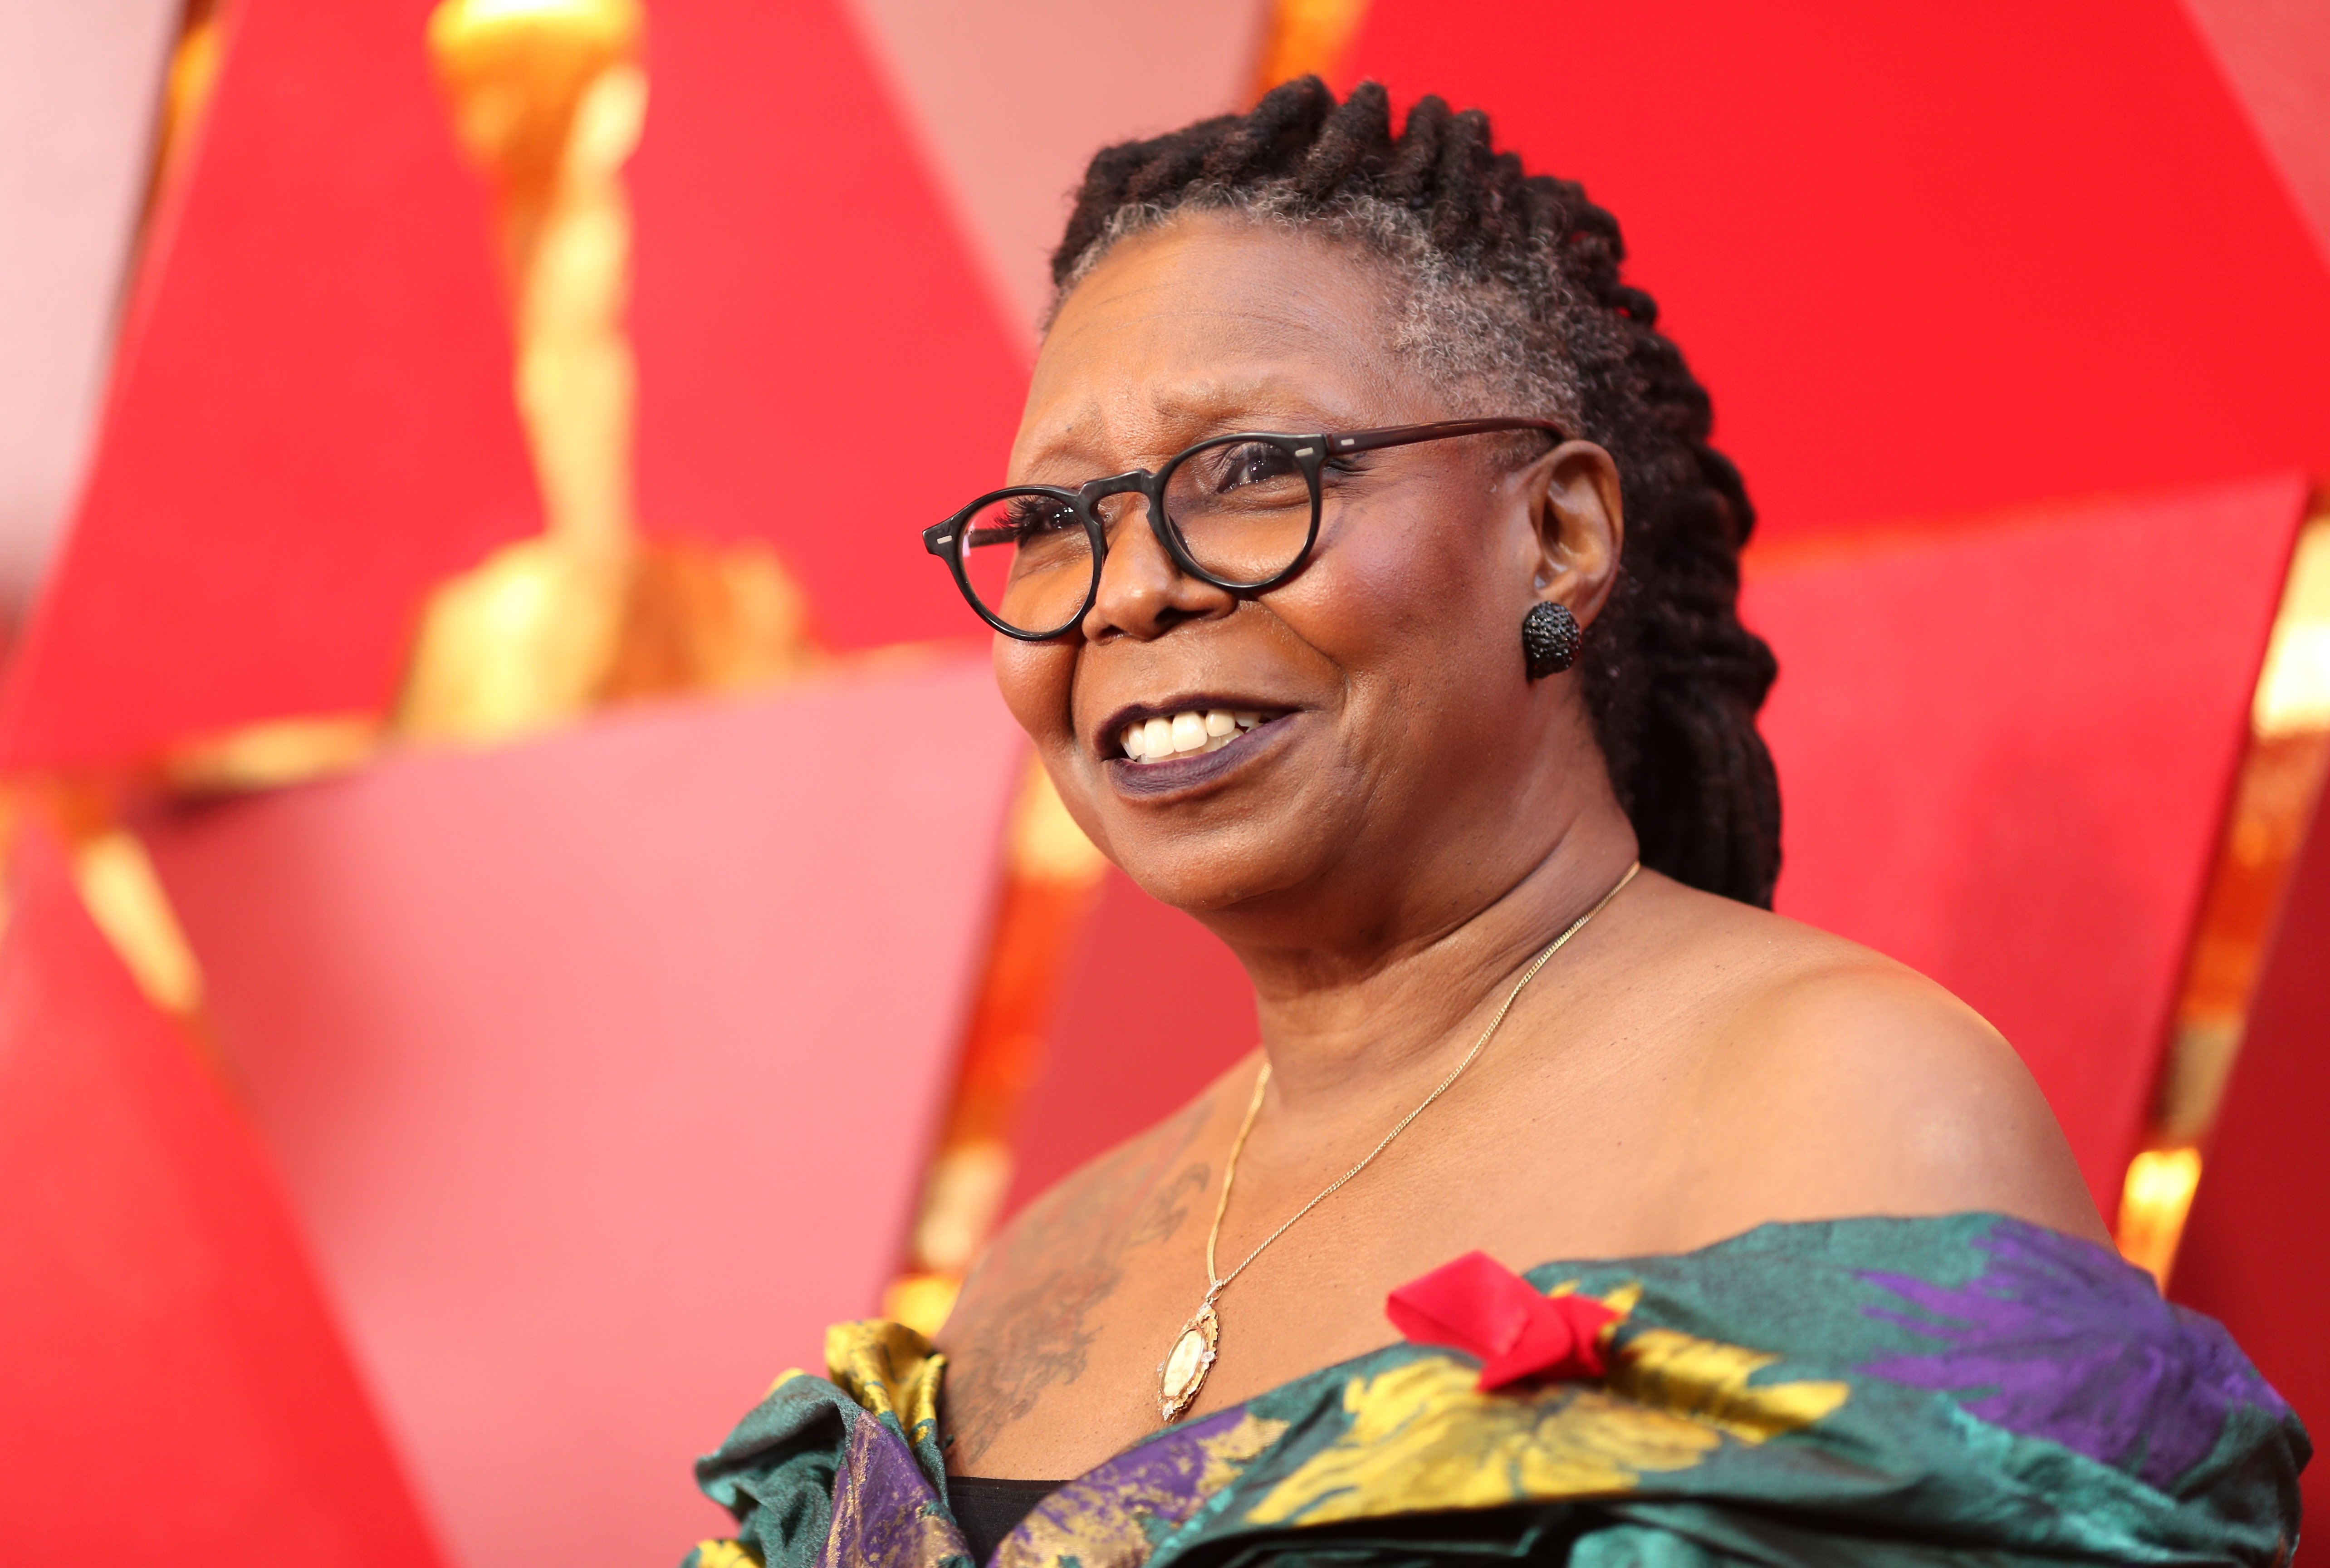 Whoopi Goldberg attends the 90th Annual Academy Awards at Hollywood & Highland Center on March 4, 2018 in Hollywood, California.| Source: Getty Images